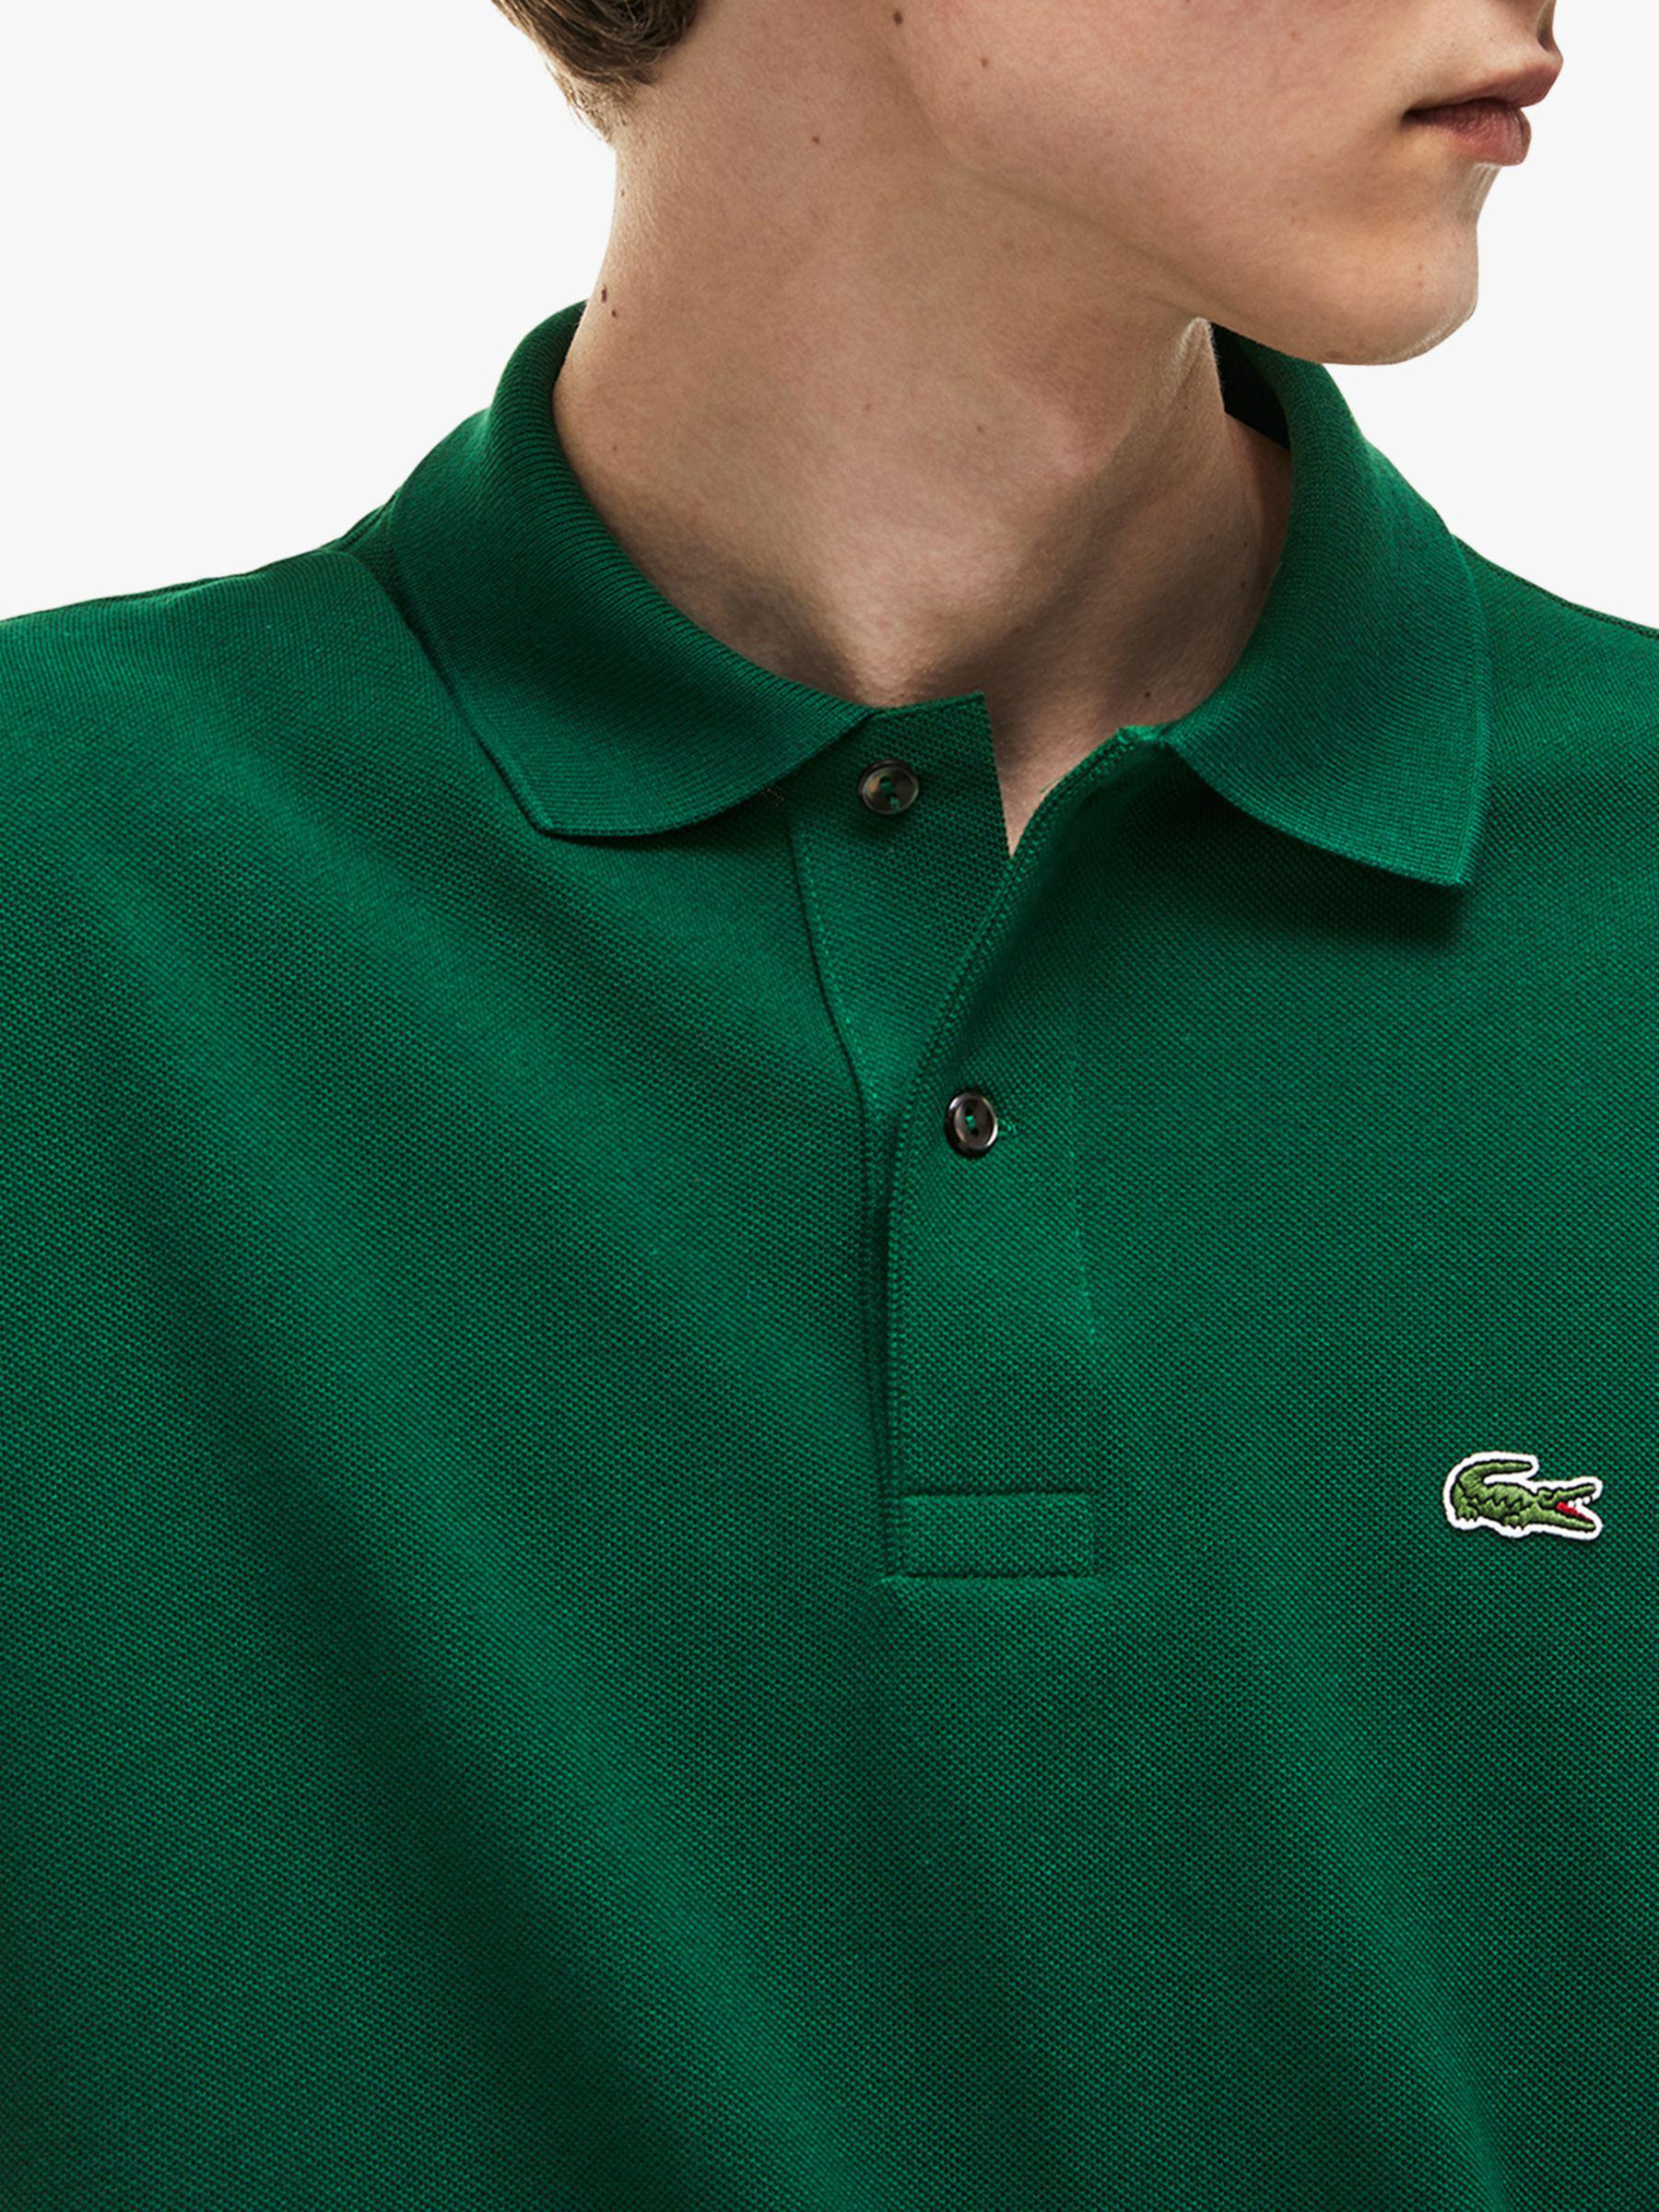 481fc667 Lacoste L.12.12 Classic Regular Fit Short Sleeve Polo Shirt in Green for  Men - Lyst